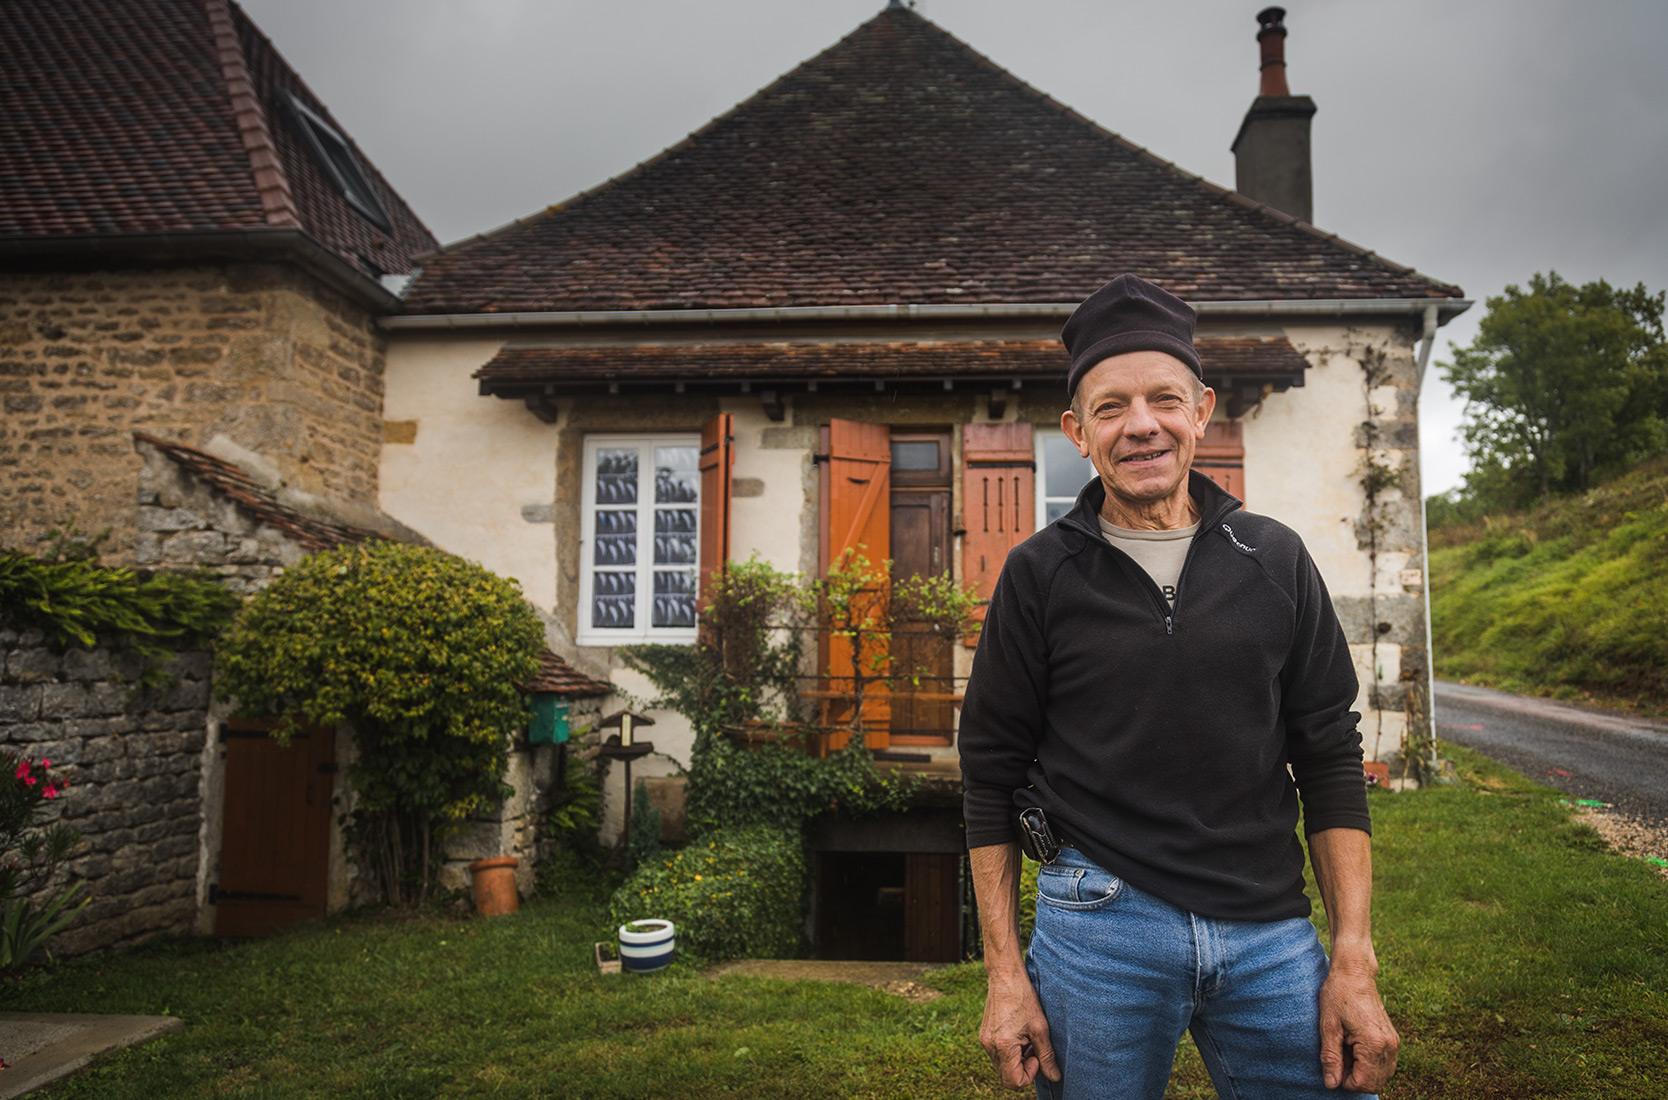 Bernard at the Domaine De Cromey in Burgundy